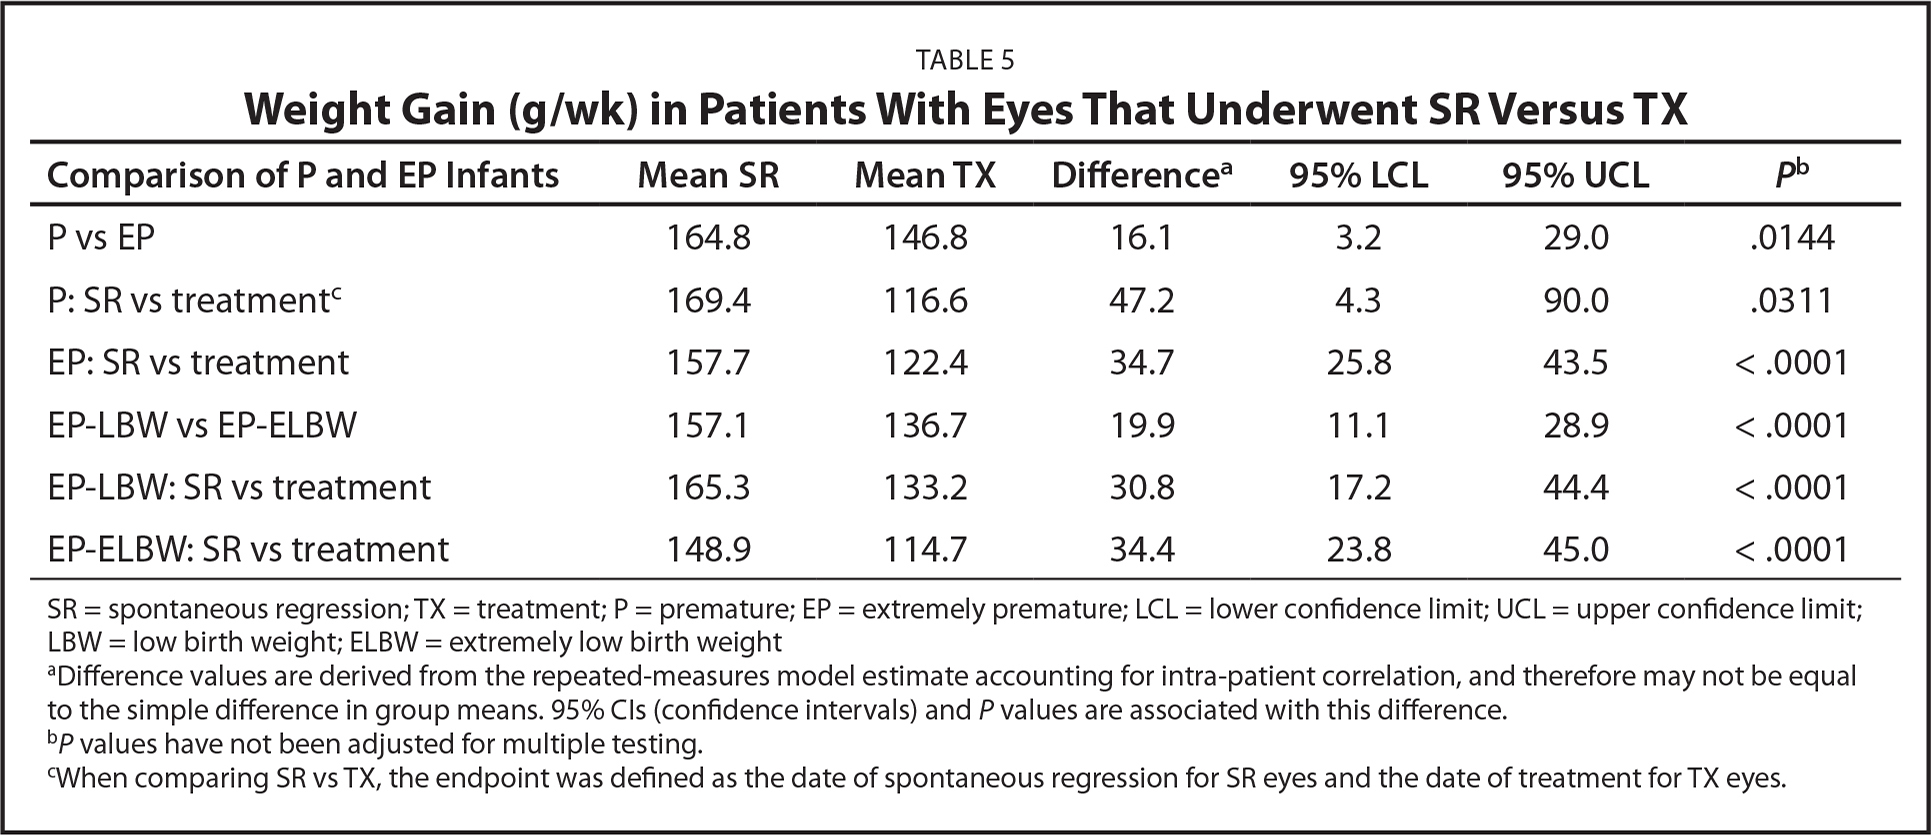 Weight Gain (g/wk) in Patients With Eyes That Underwent SR Versus TX